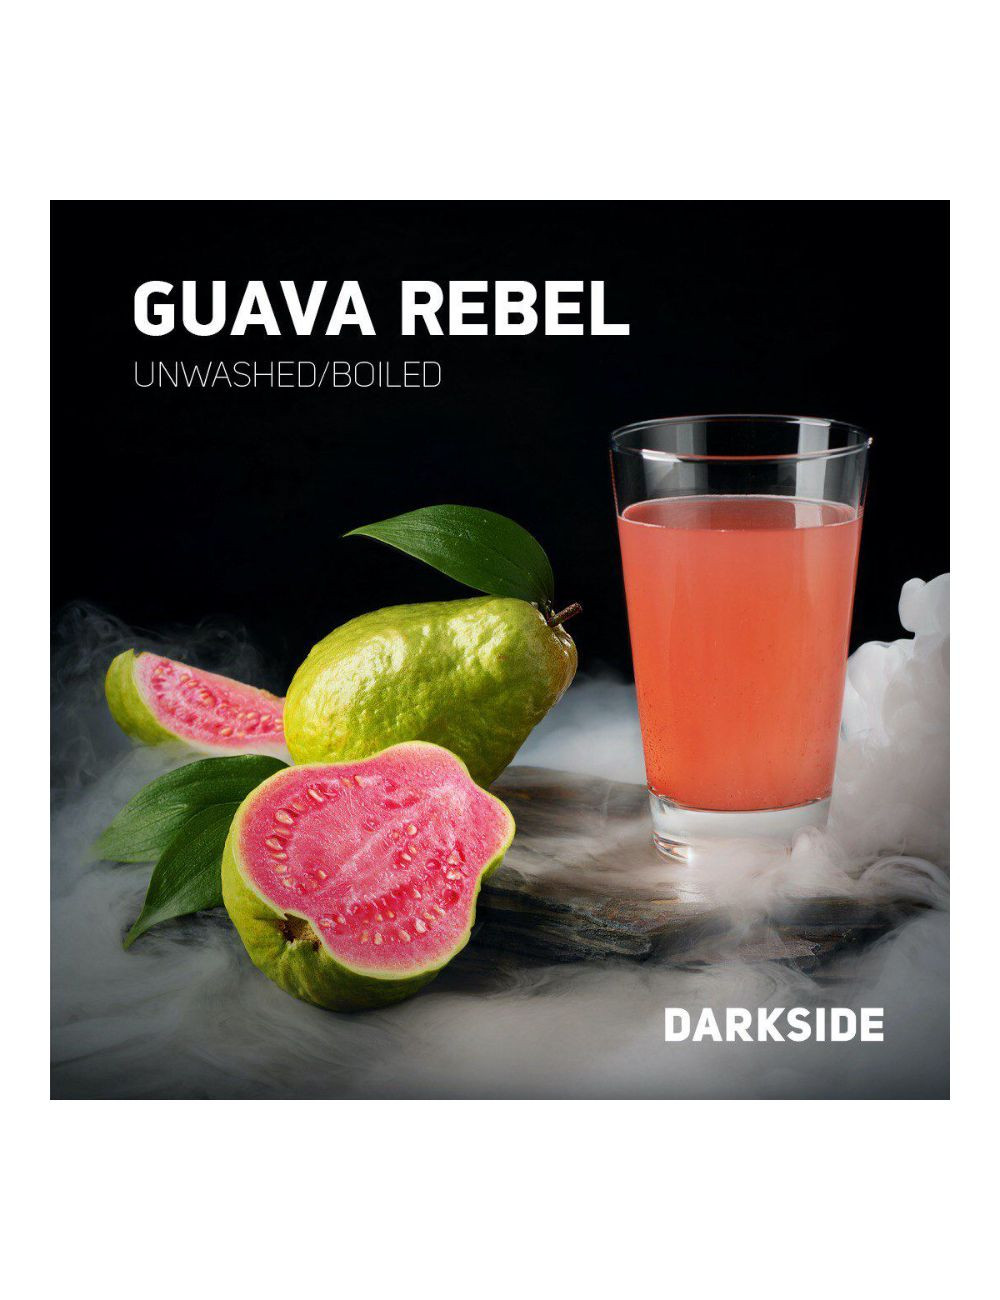 Guava Rebel